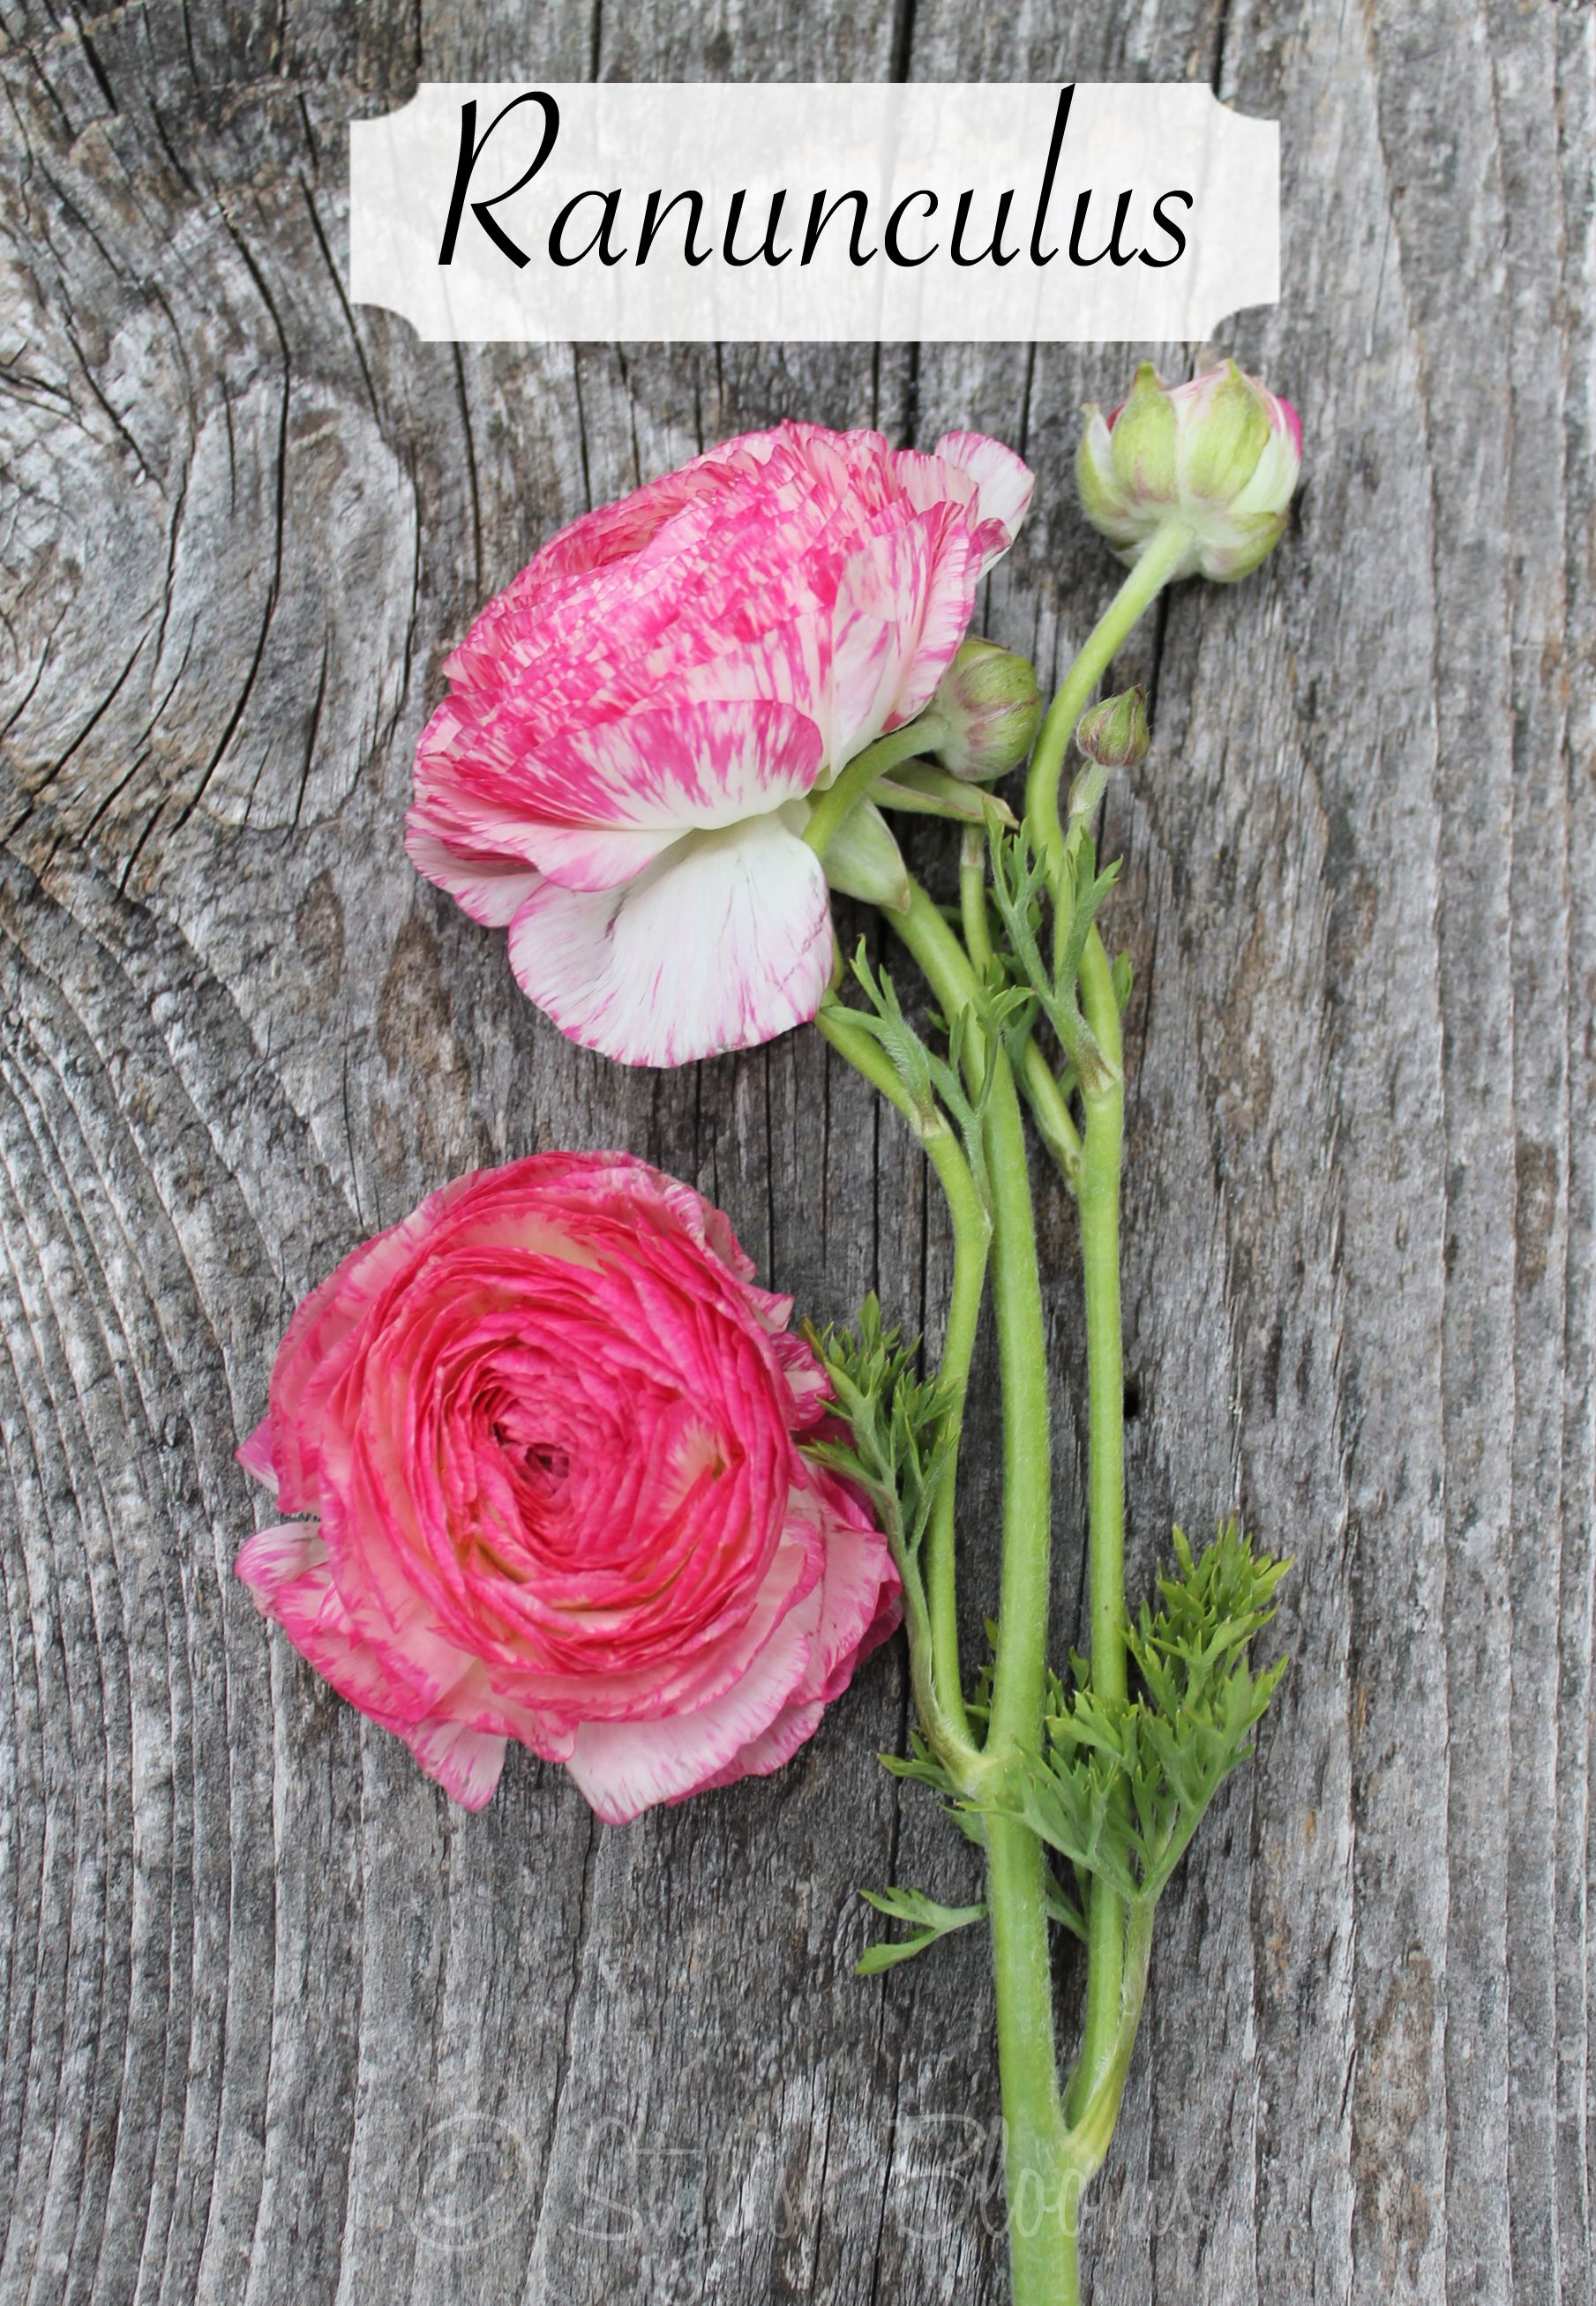 Hot Pink Variegated Ranunculus Flower Guide Types Of Flowers Floral Design Classes